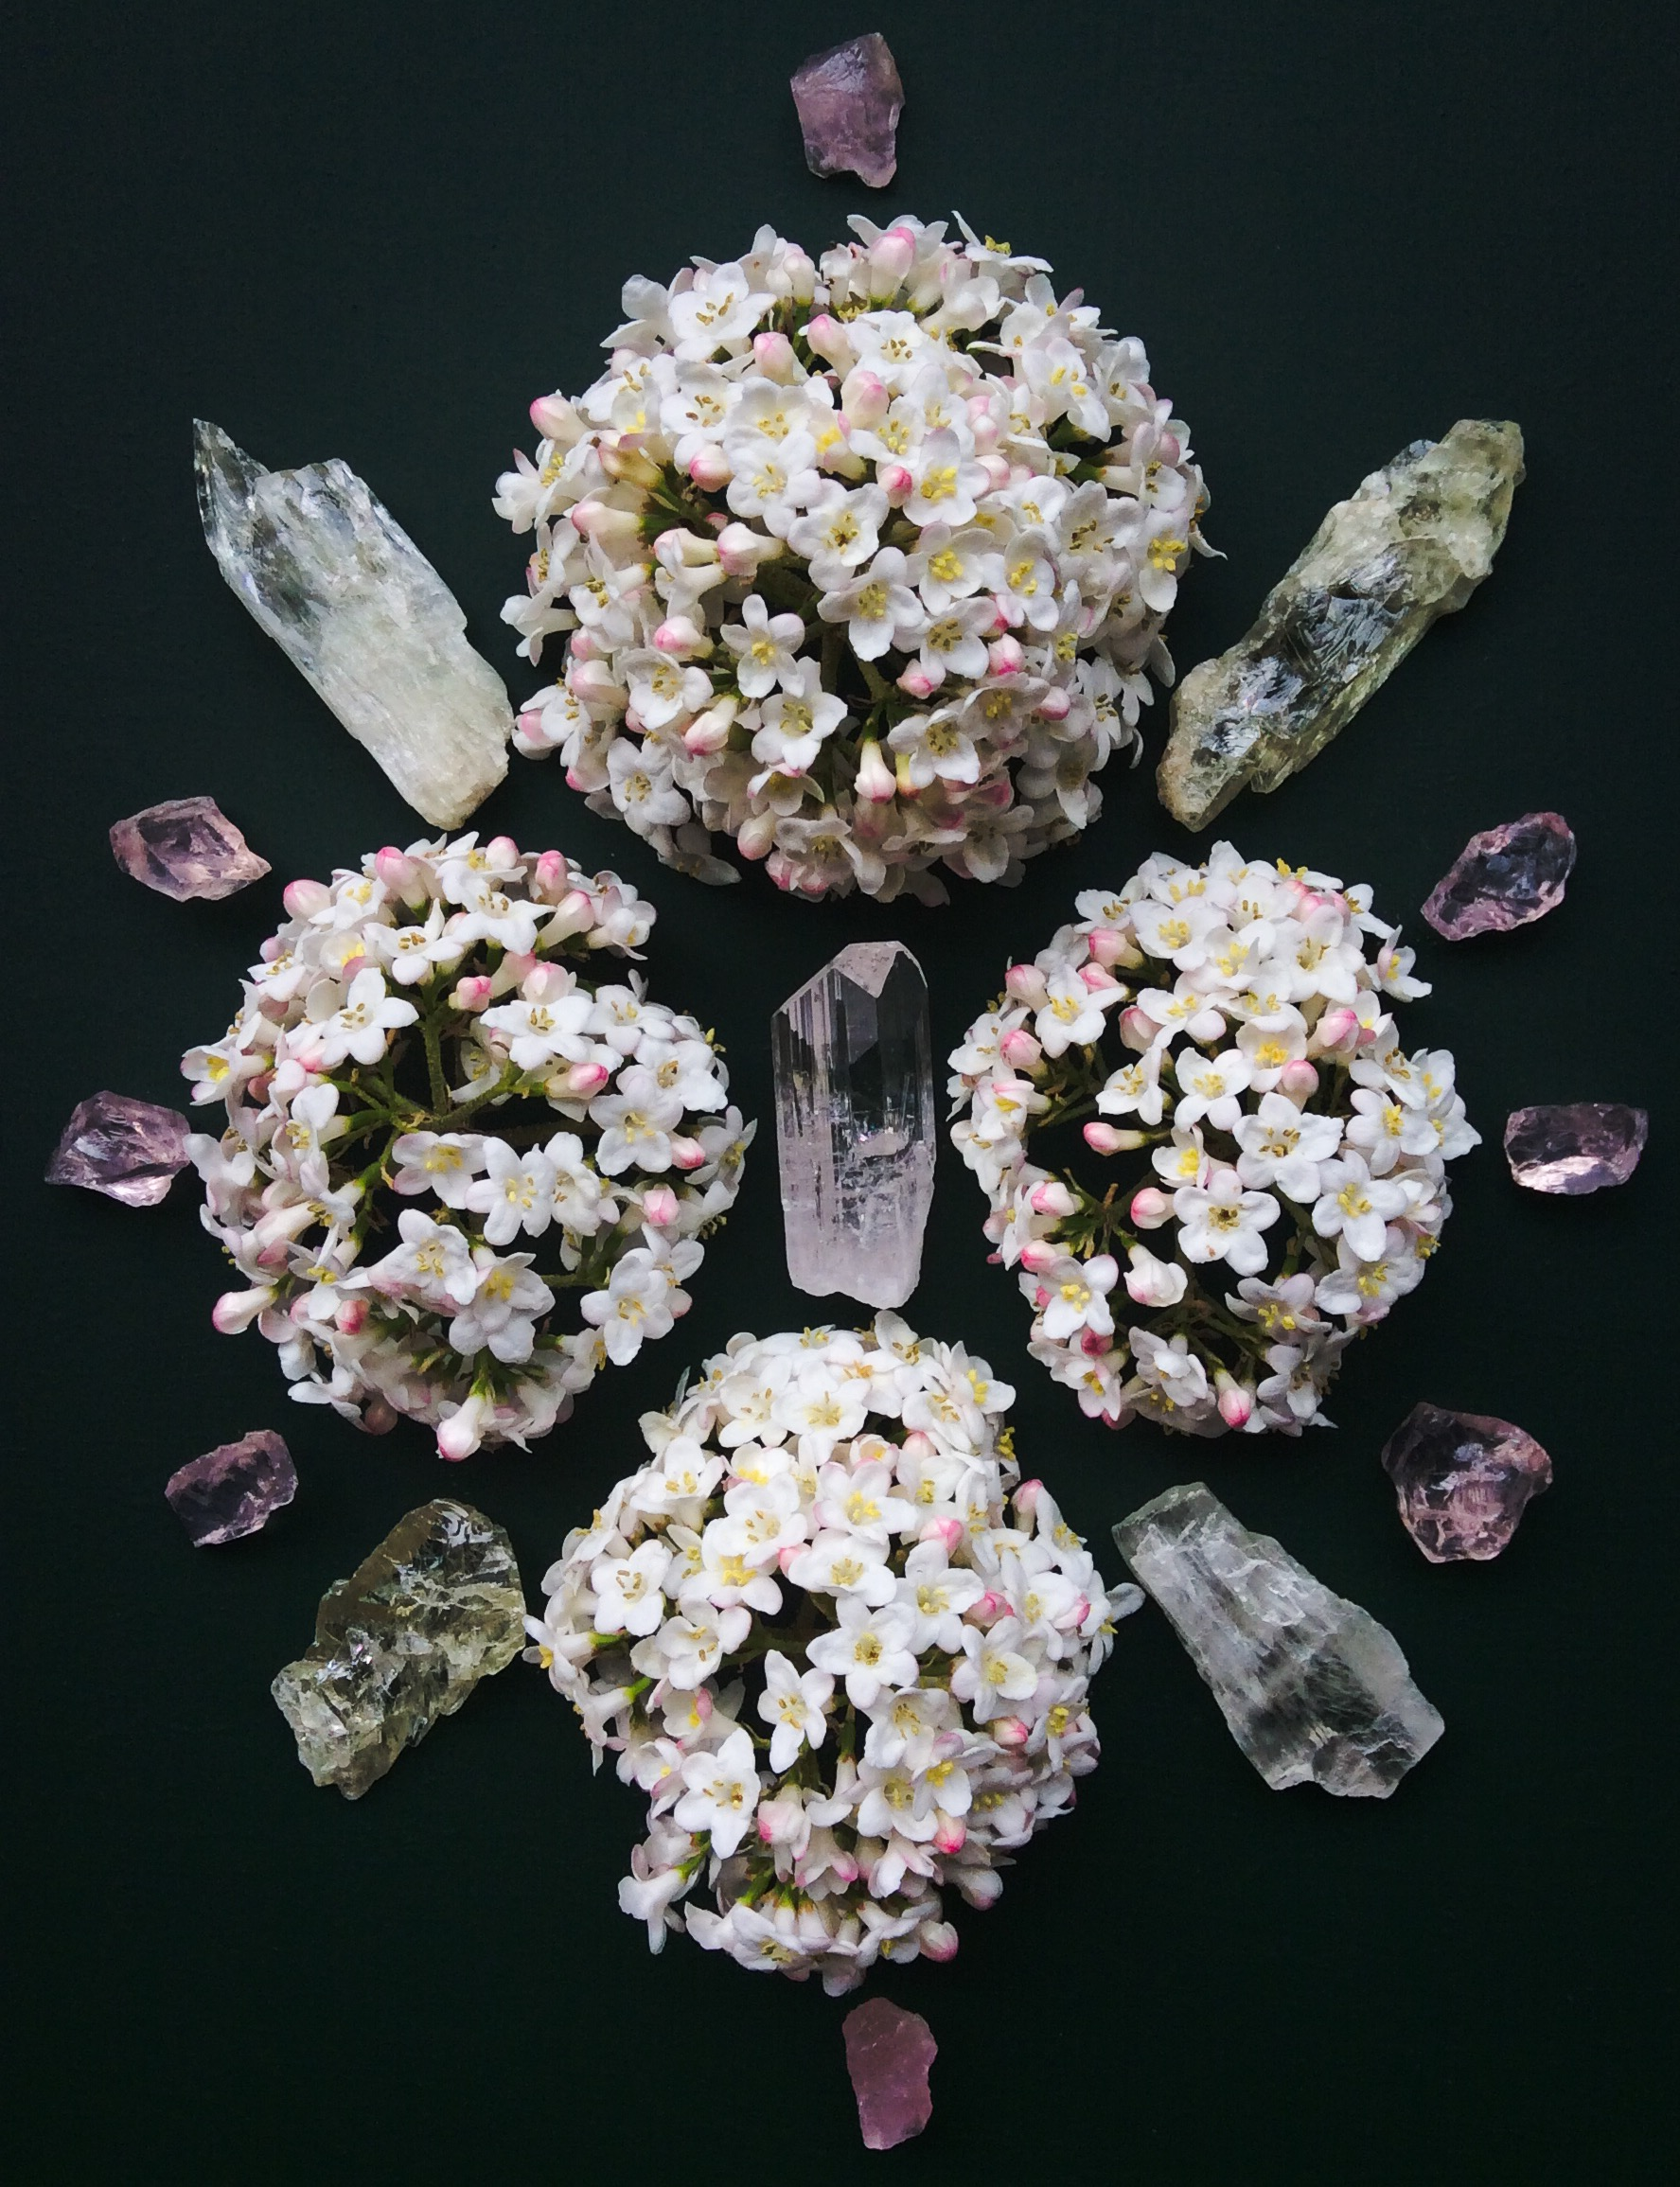 Danburite, Hiddenite, Rose Quartz and Viburnum